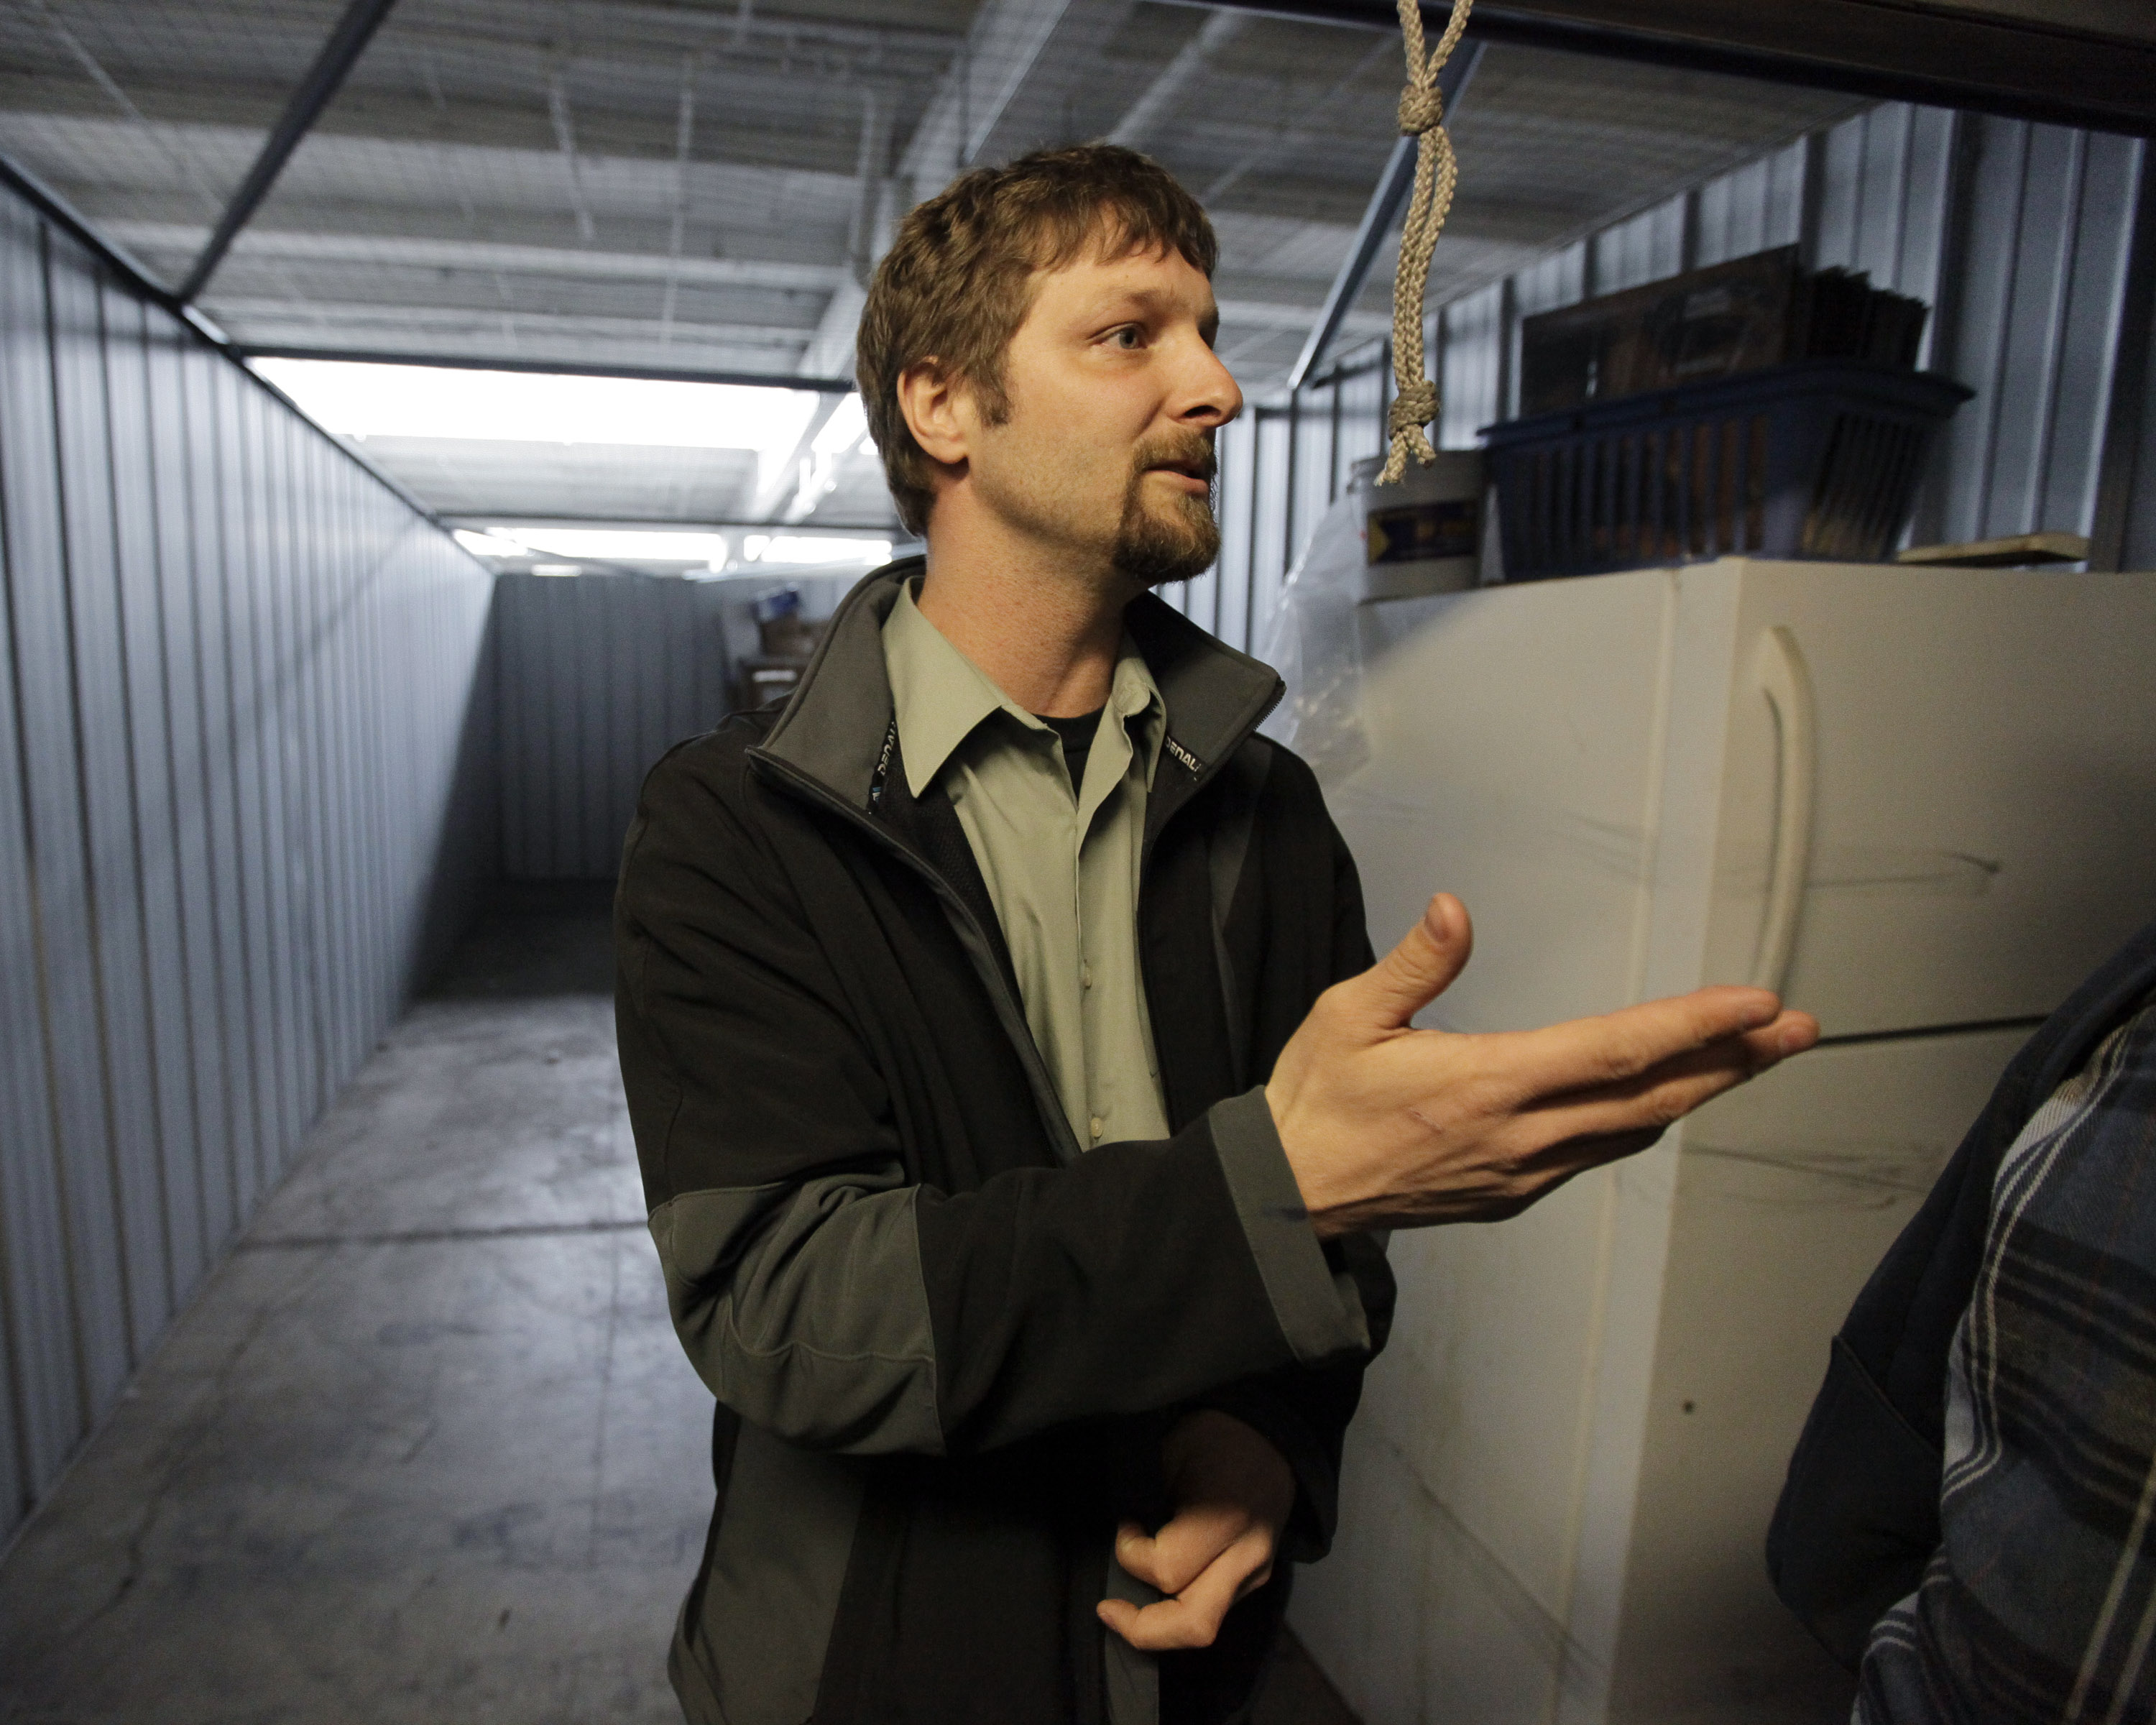 Brook Snyder auctions off property from a locker inside a storage facility in Chicago. The  sc 1 st  The Spokesman-Review & Bidders haul in bounty at storage-unit auctions | The Spokesman-Review